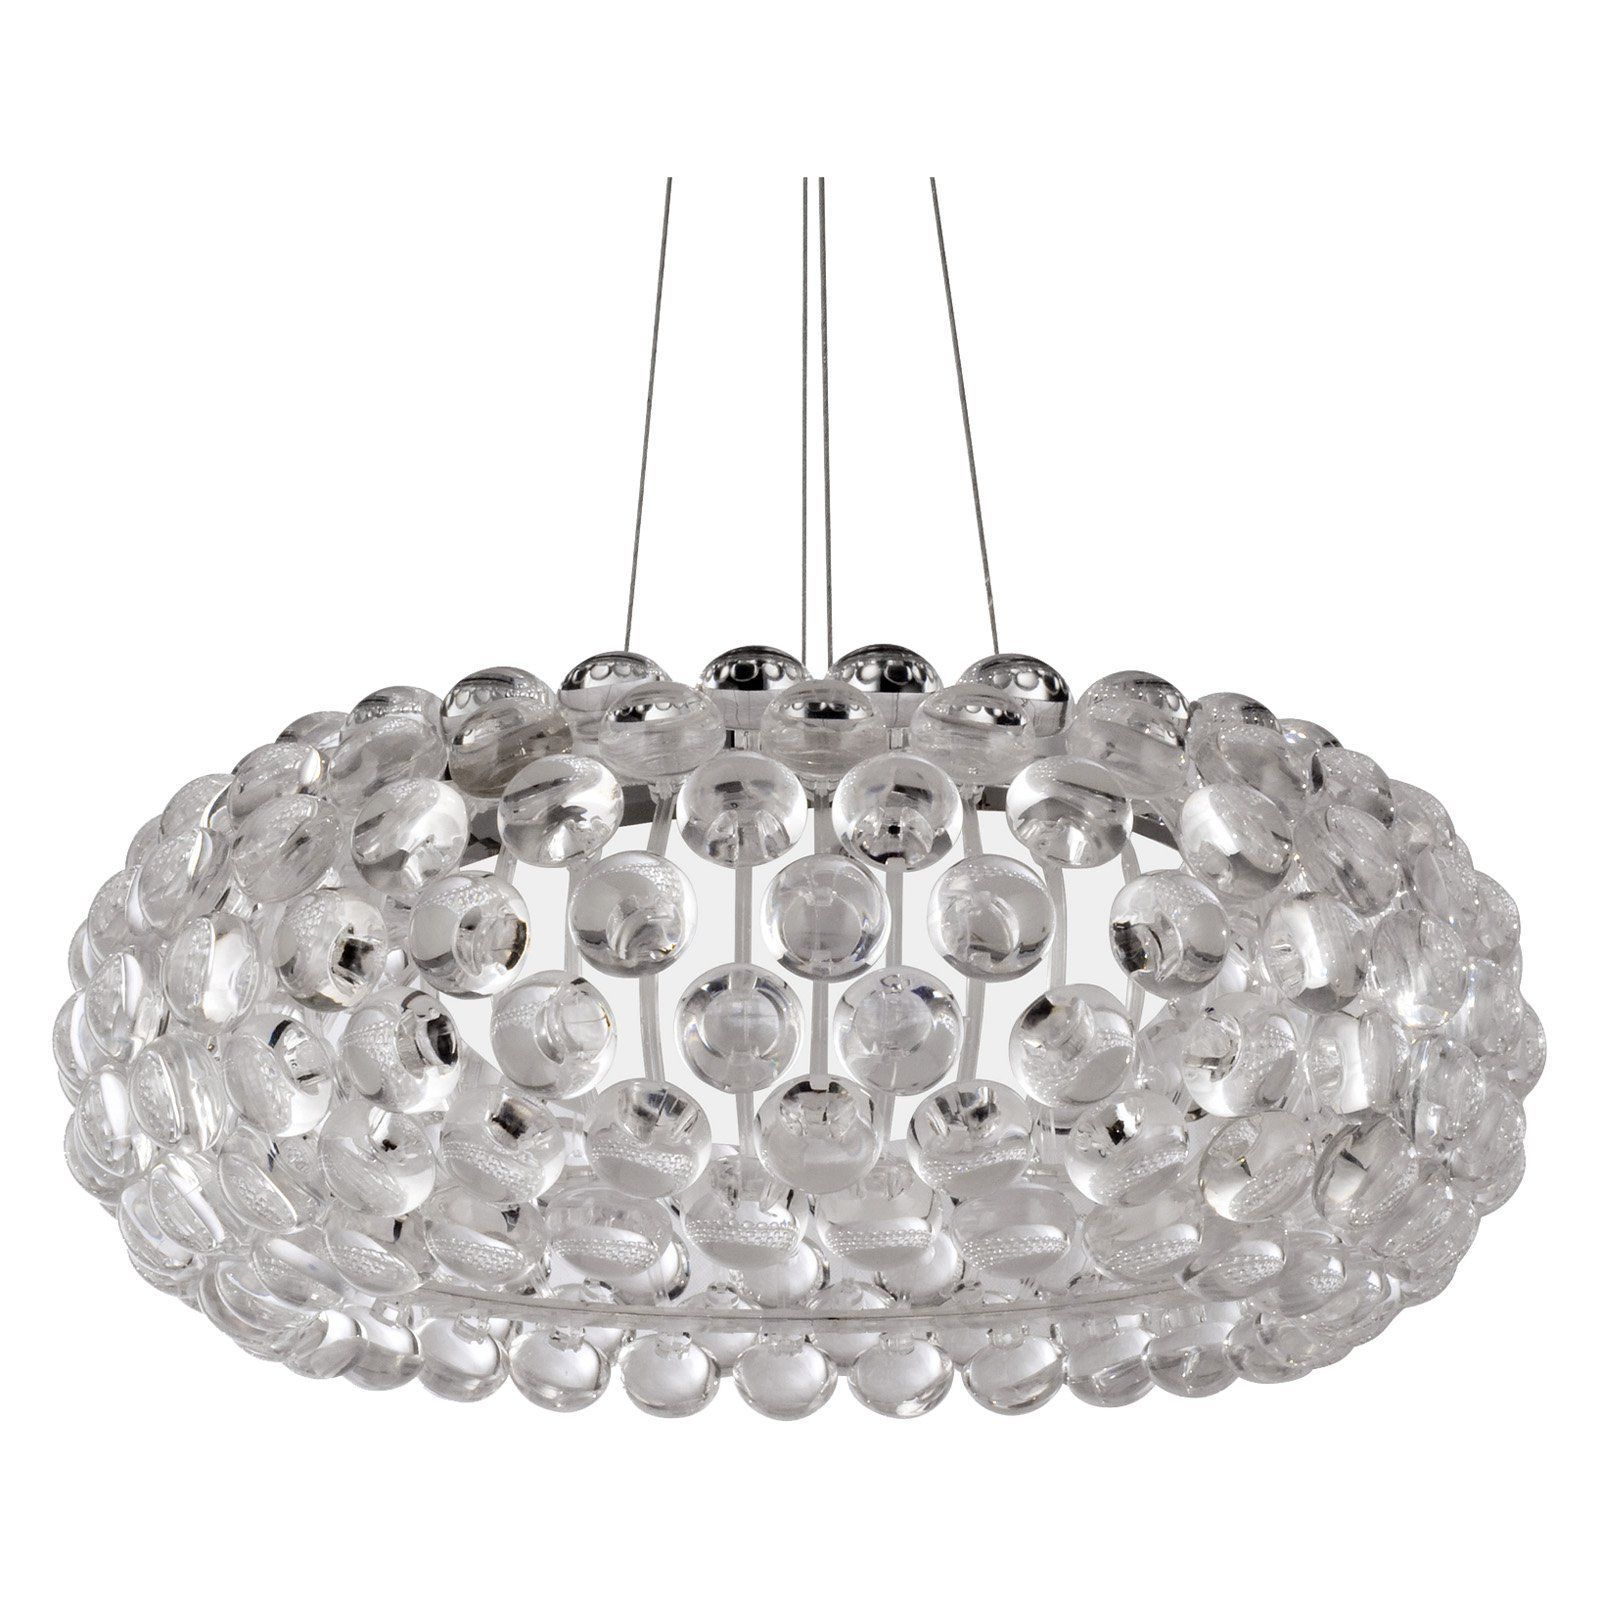 Halo Acrylic Crystal Chandelier 25 5W in Clear Like sparkling